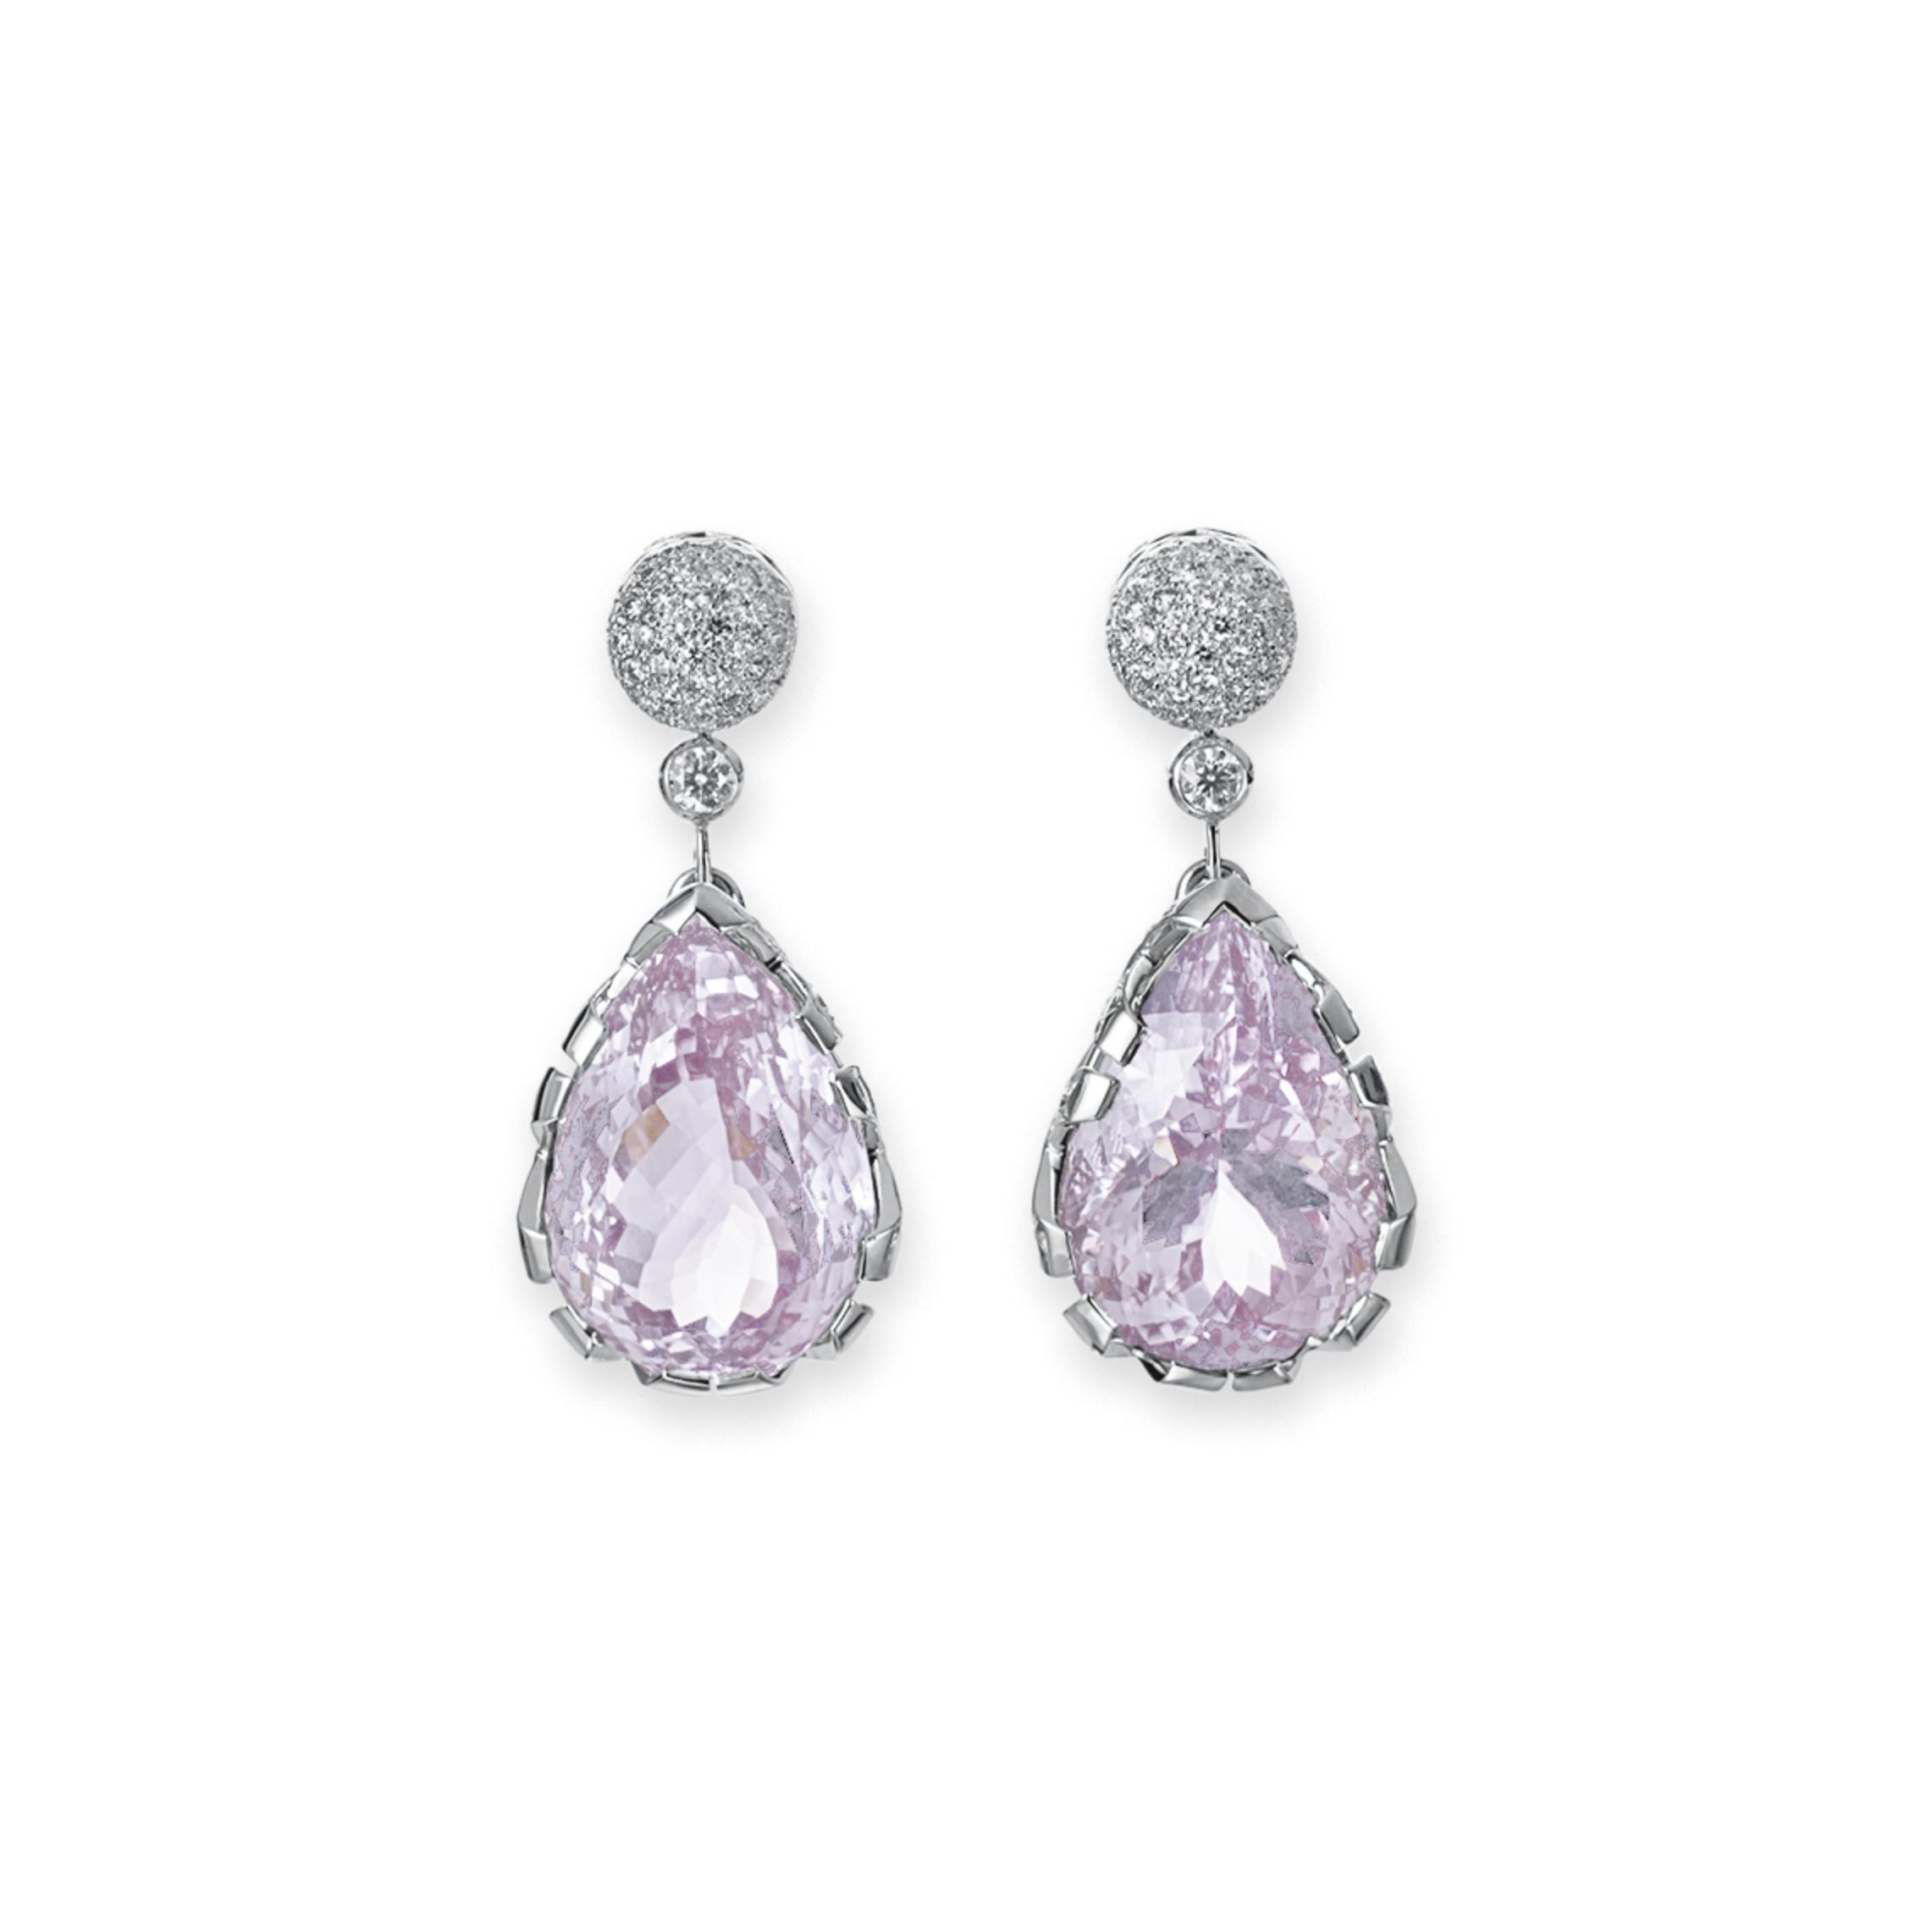 earrings kunzite diamond pin pair and gold pendant of tourmaline pink karat